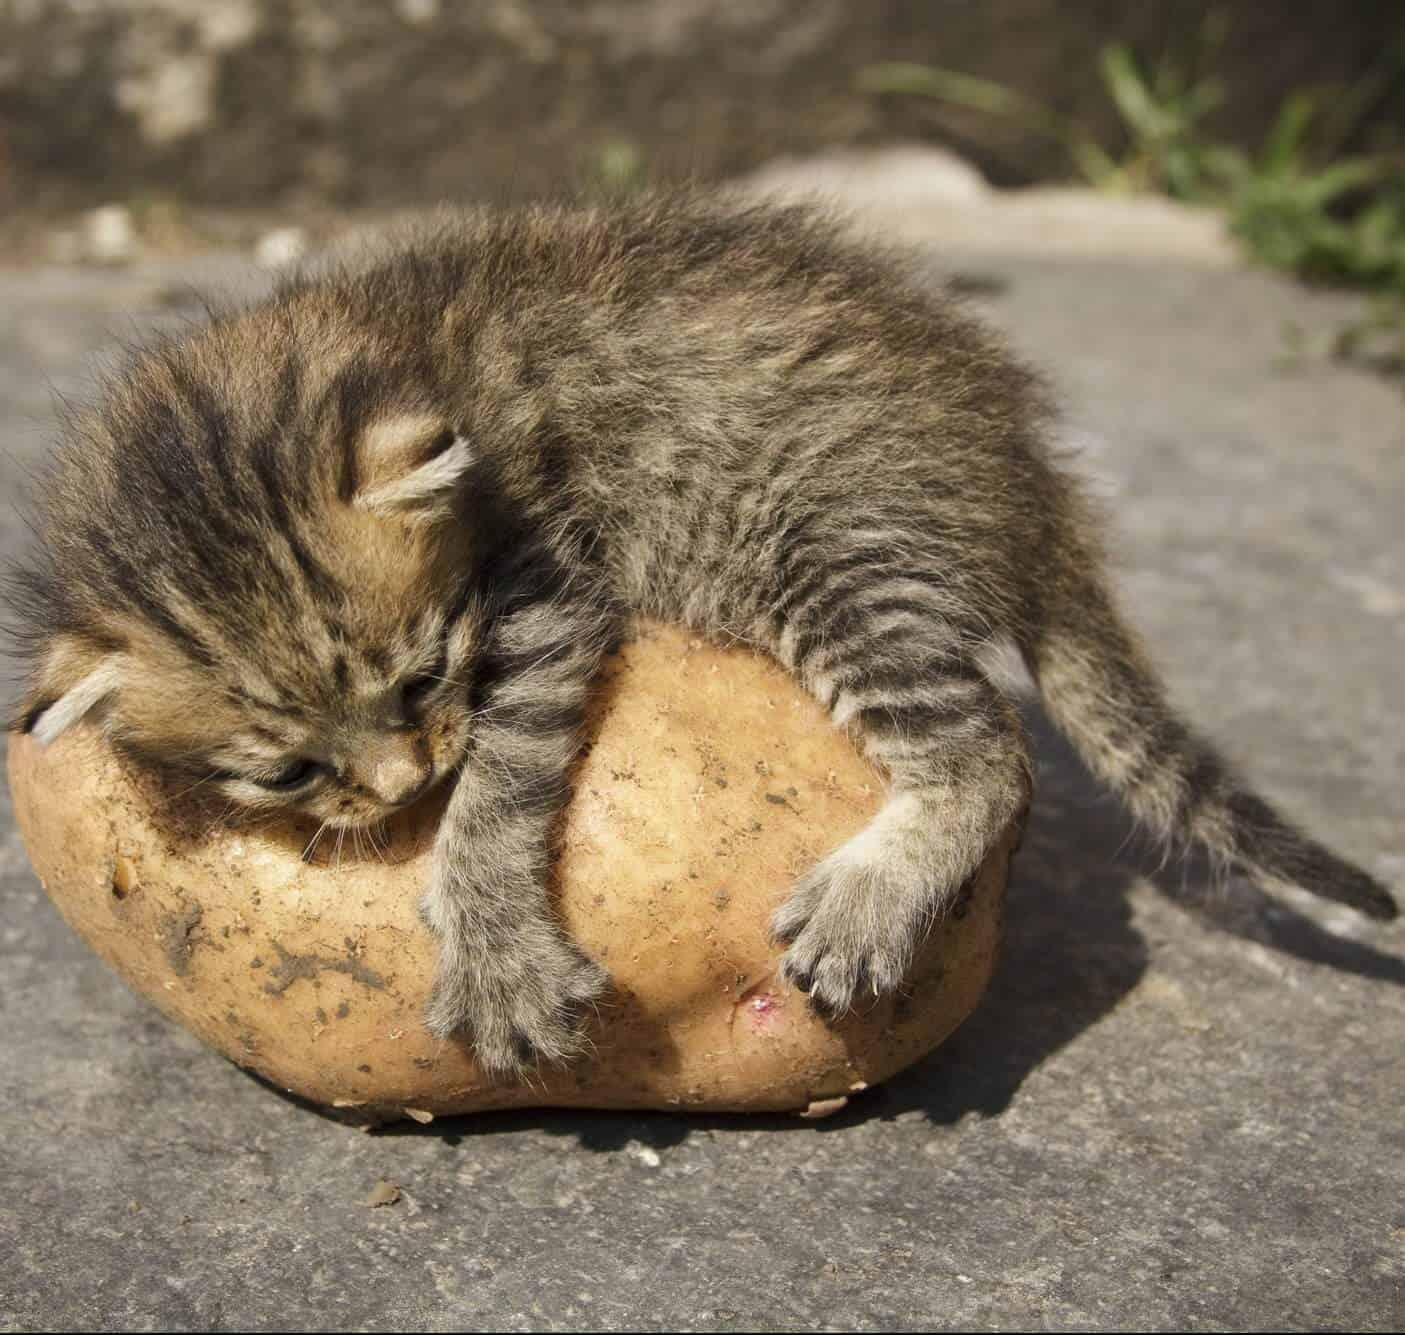 Can Cats Eat Fruits And Veggies